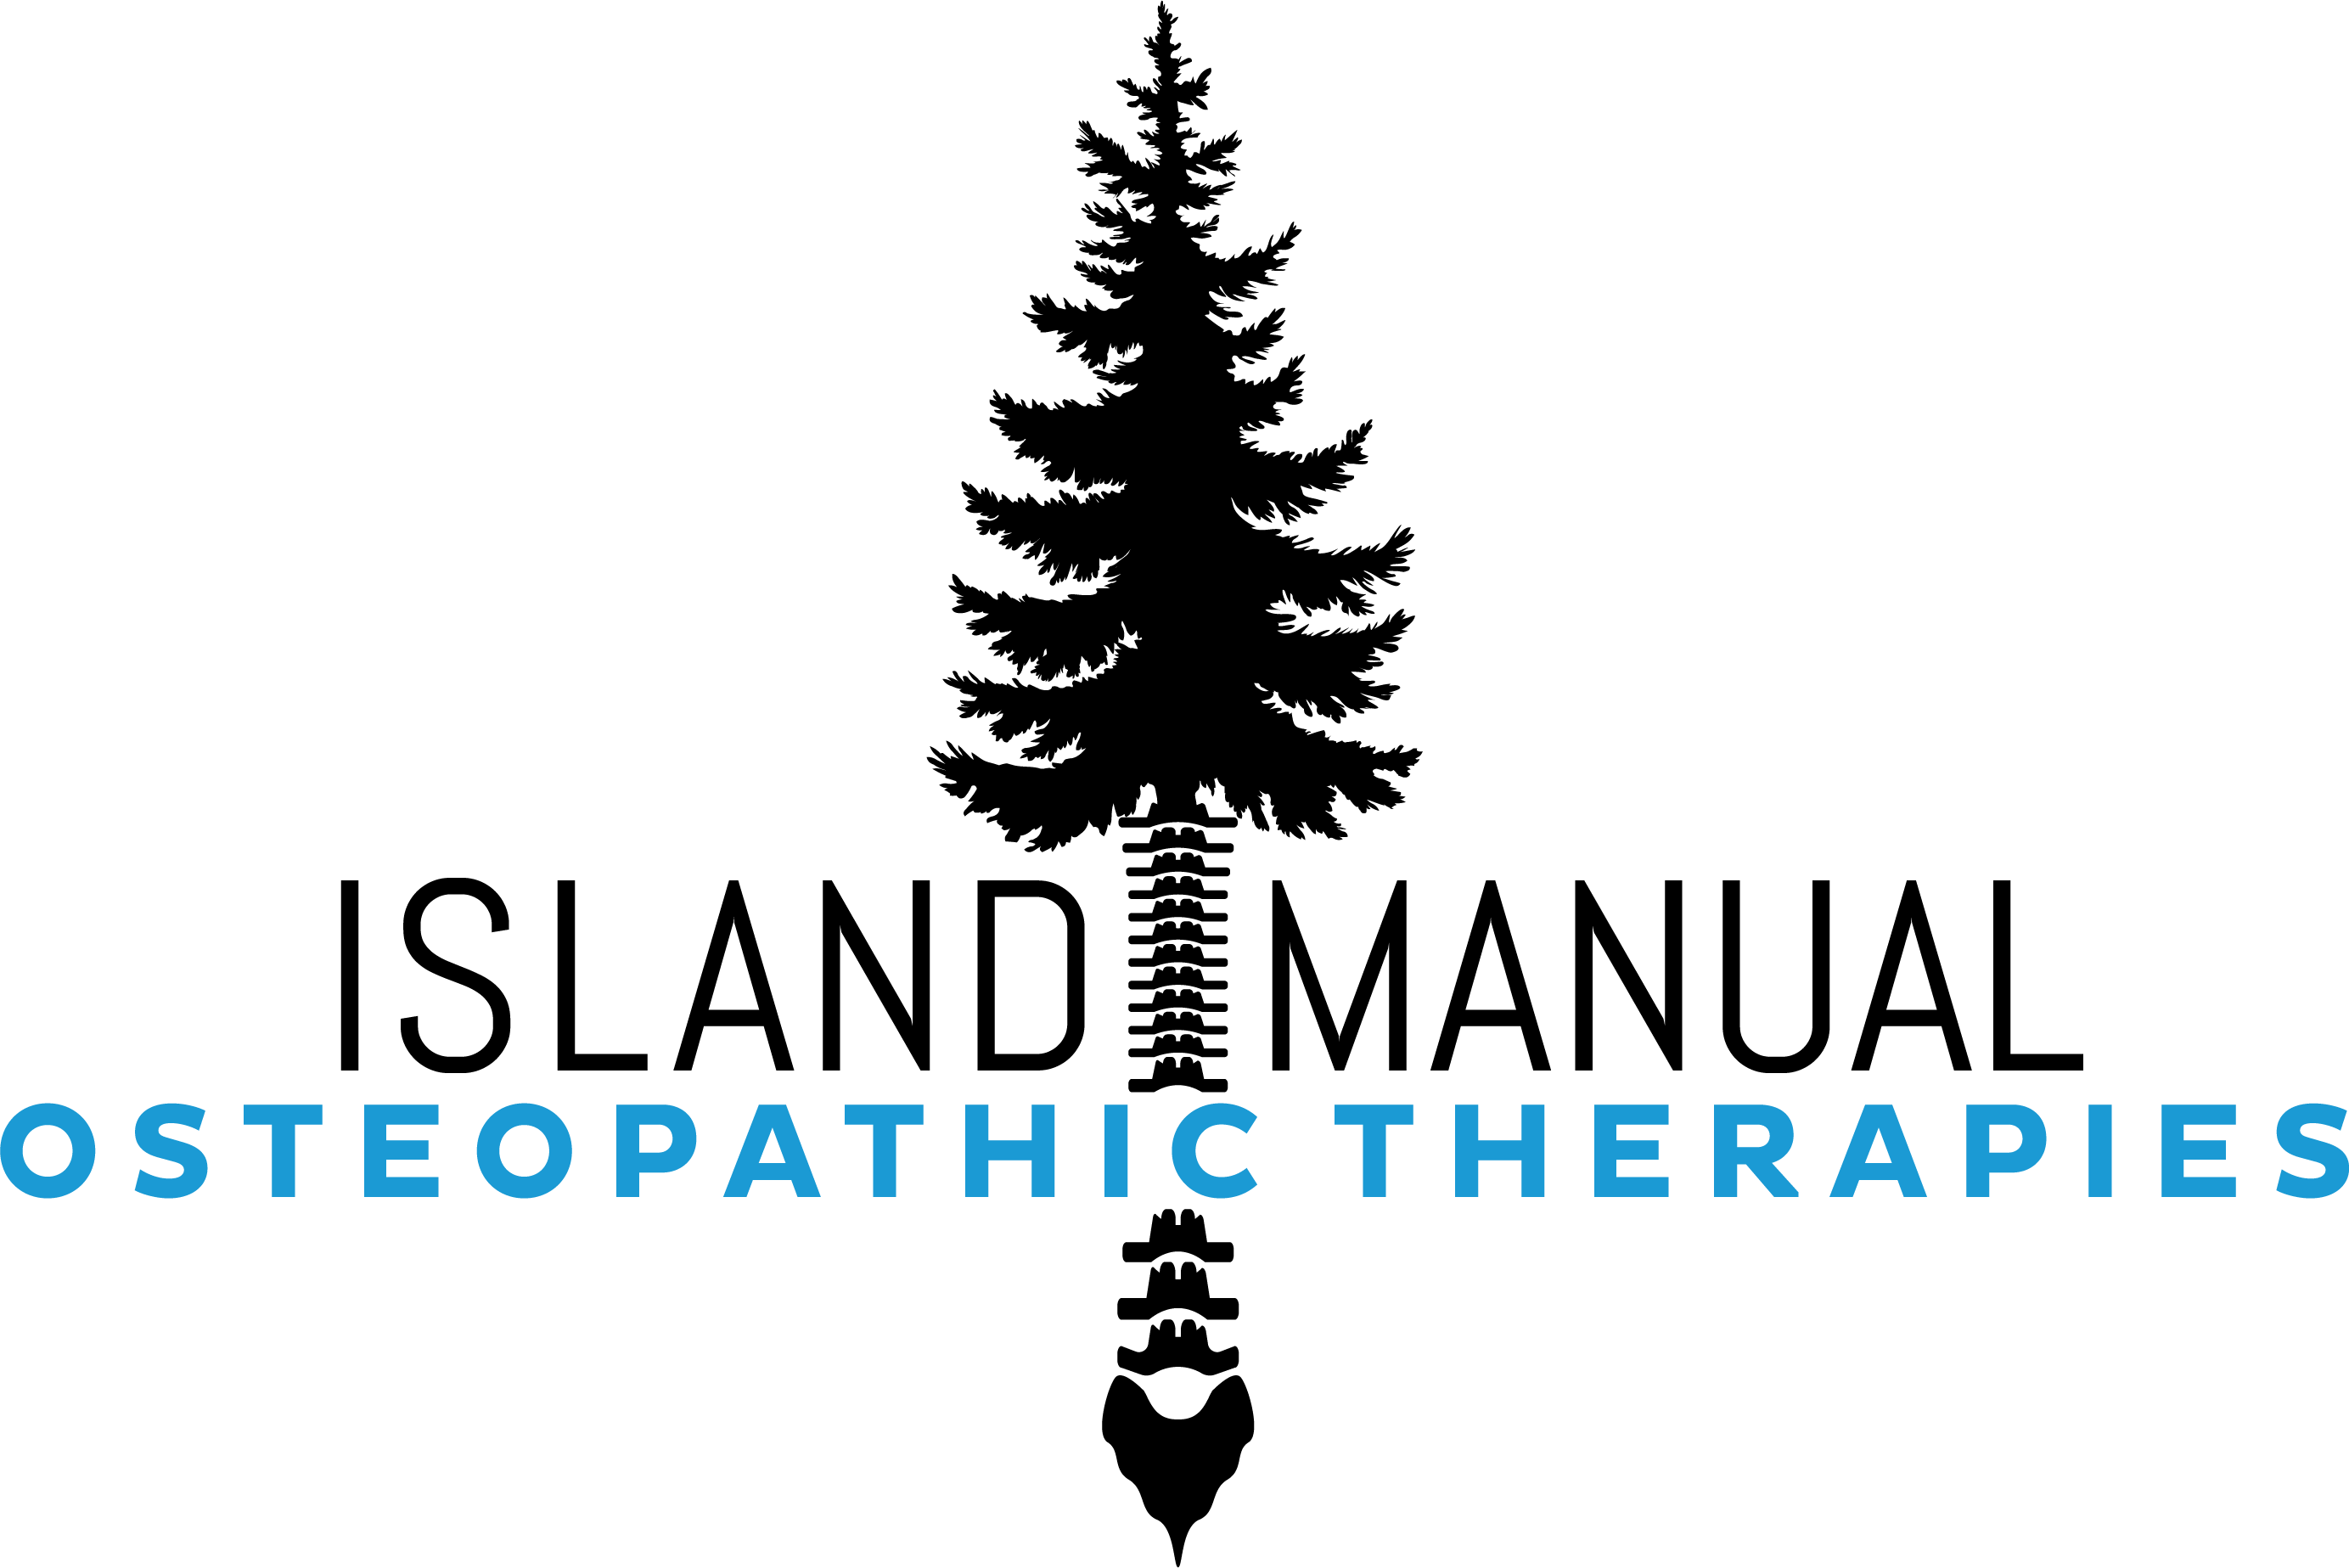 Island Manual Osteopathic Therapies